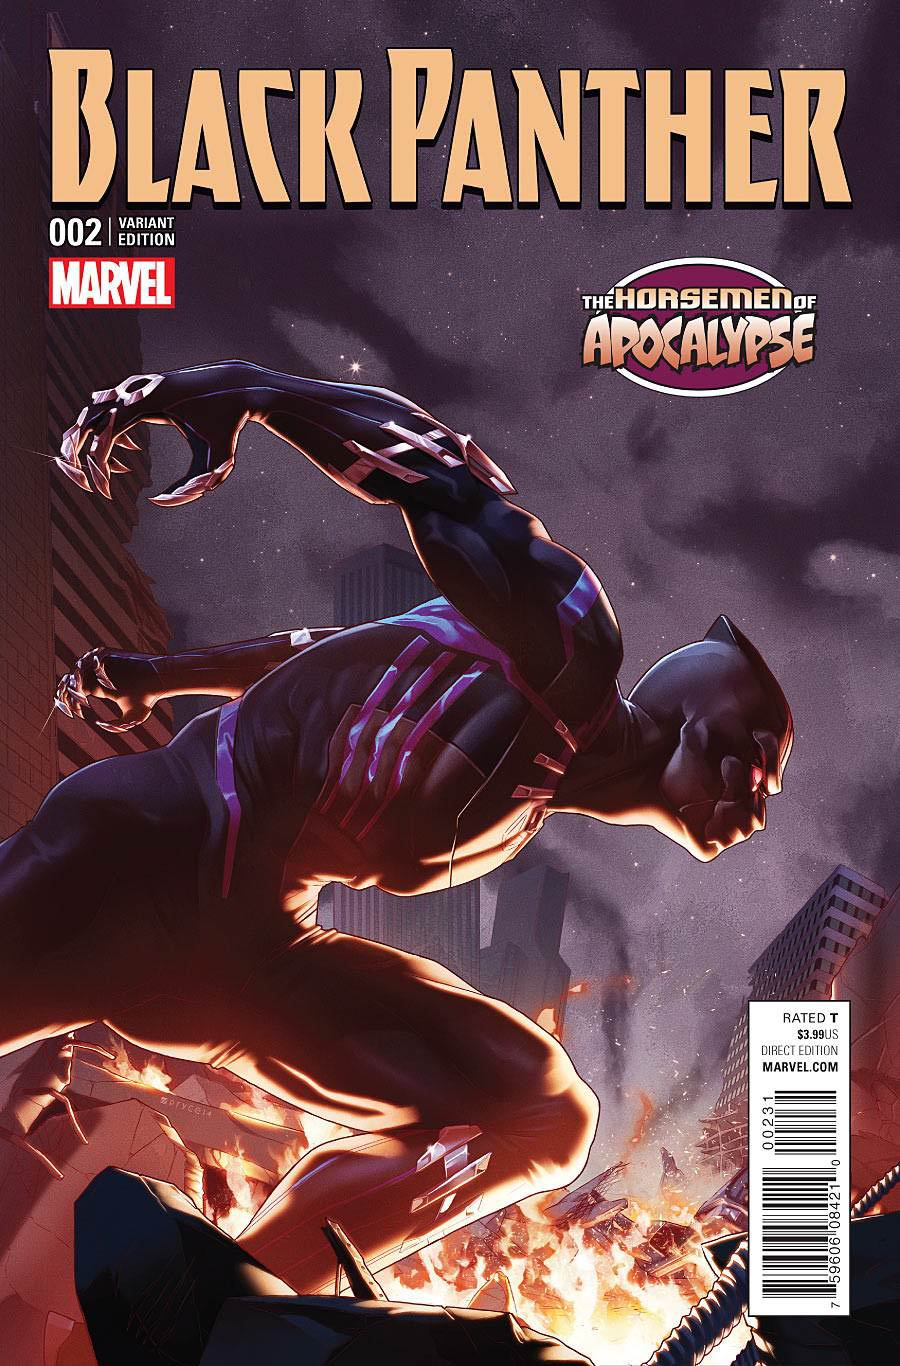 Black Panther Vol 6 #2 Cover C Variant Age Of Apocalypse Cover